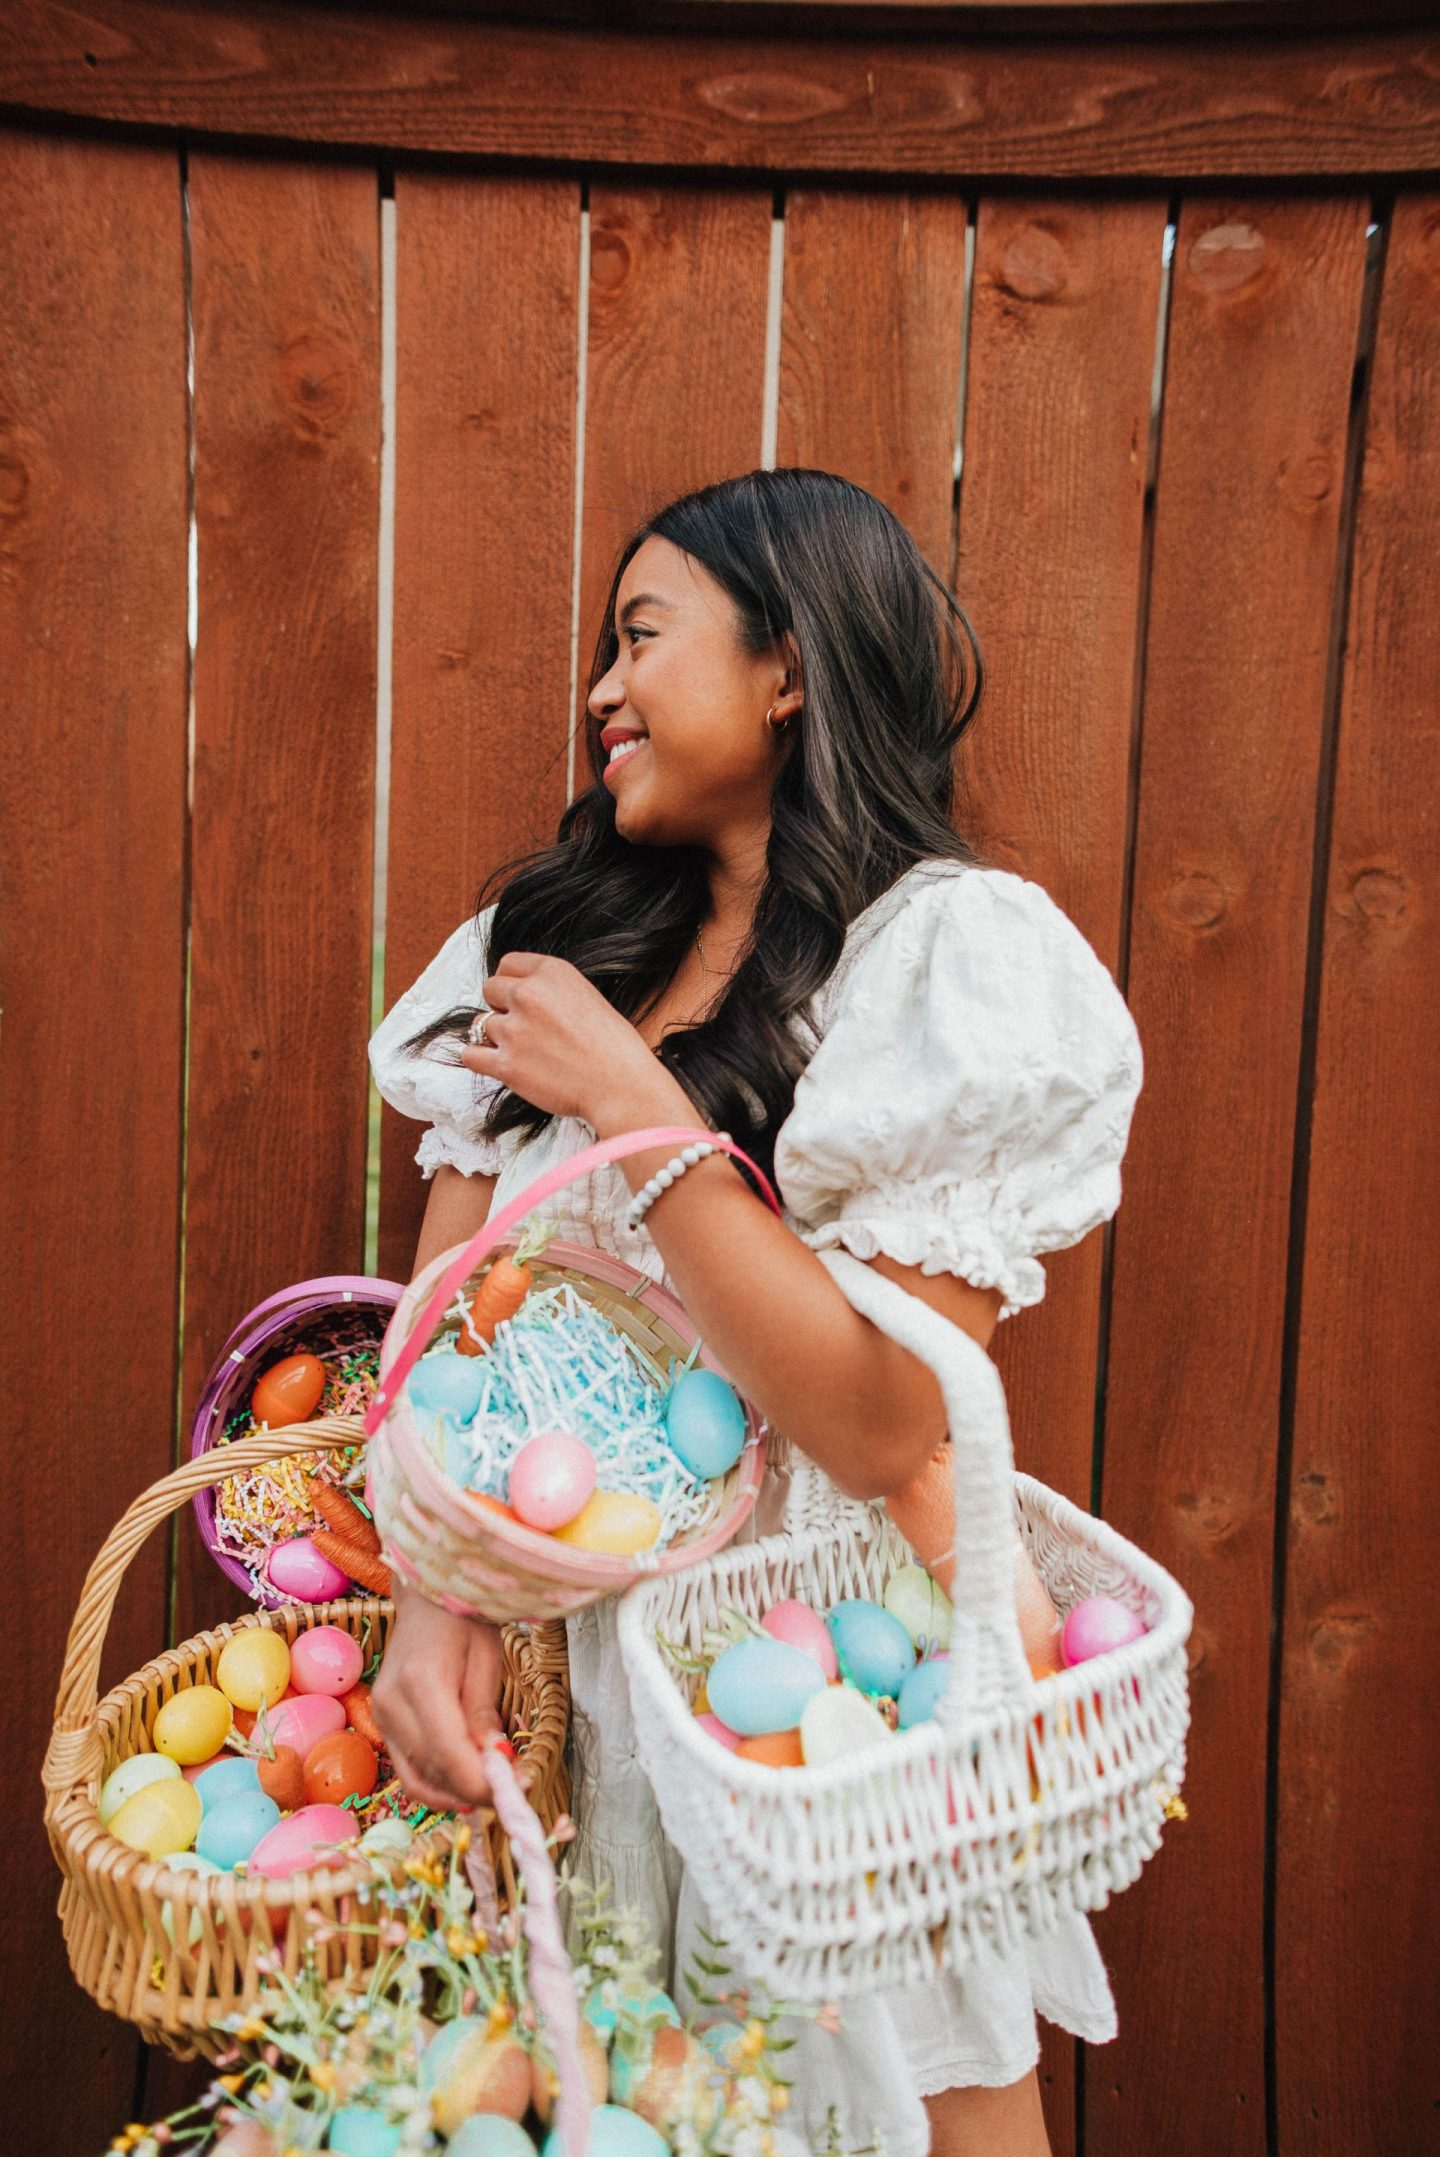 Easter posing ideas - Easter baskets - Easter egg hunt - Easter photo shoot ideas - Easter dresses - Easter outfits - image from www.emmasedition - copyright @emmasedition